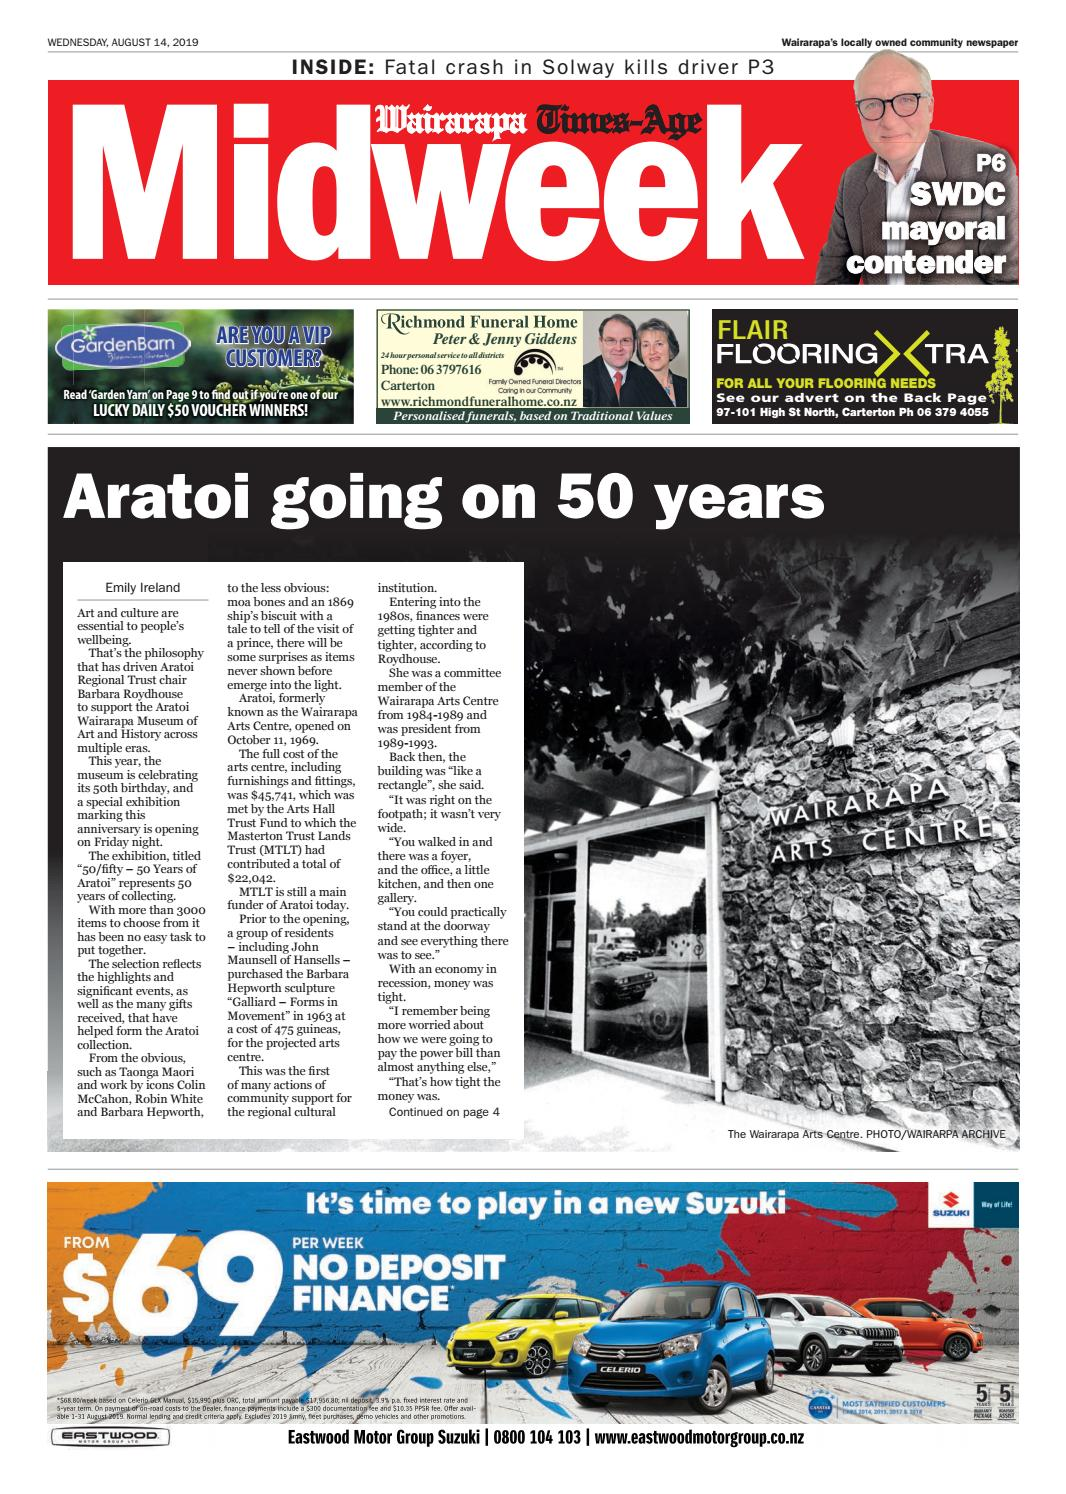 Wairarapa Midweek Wed 14th August by Wairarapa Times-Age - issuu